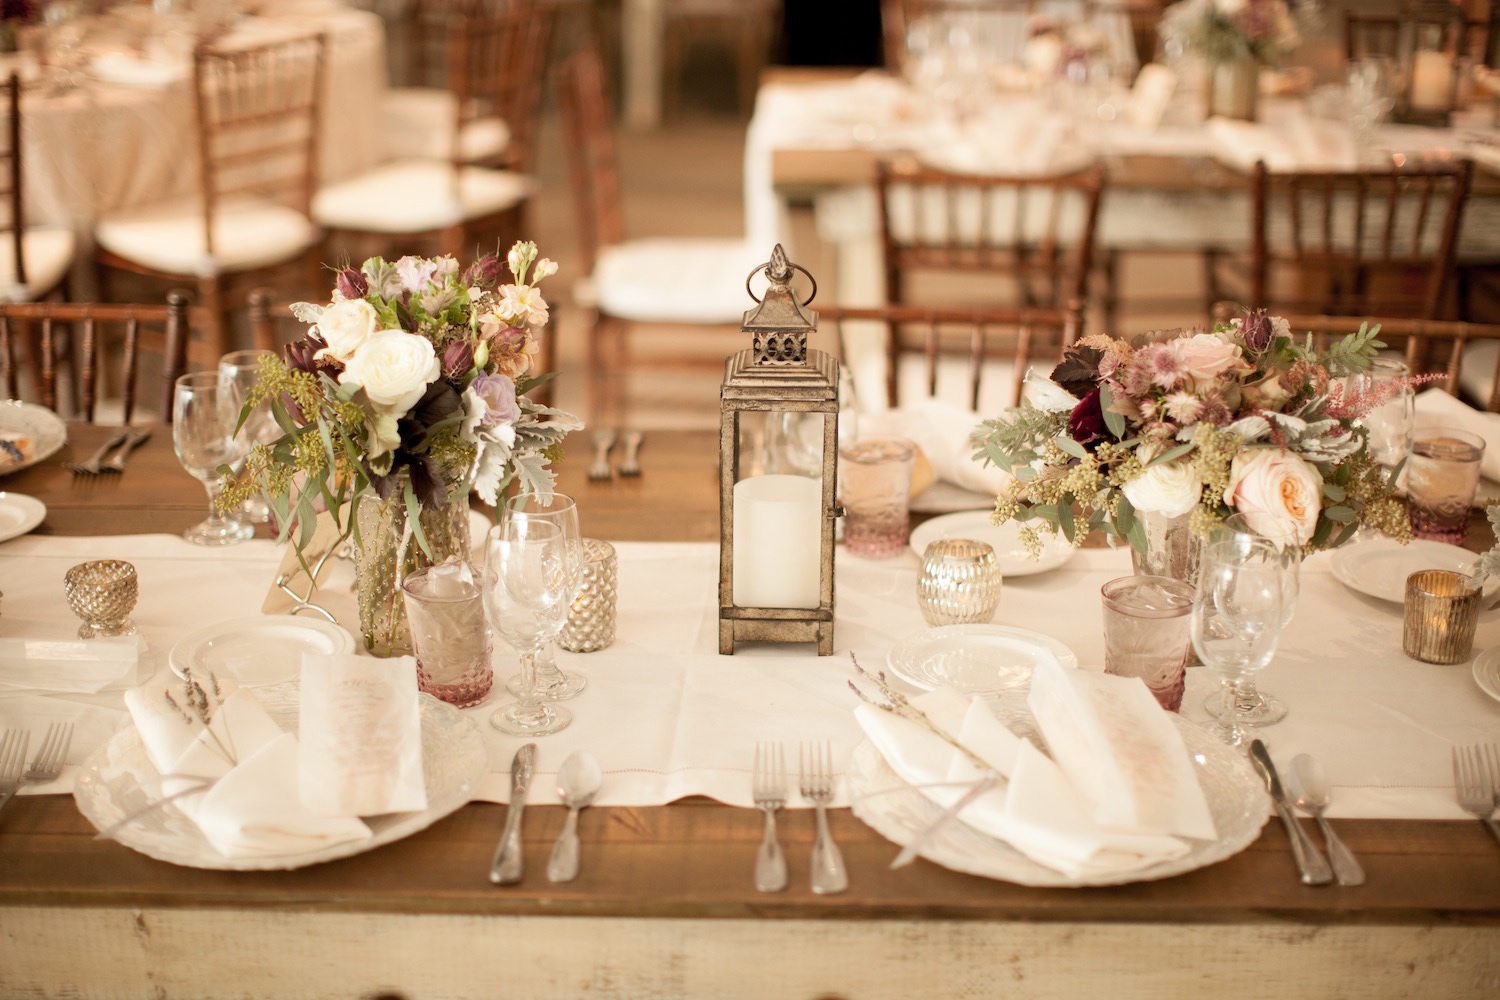 Wedding Planning Ideas: How To Find The Perfect Wedding Planner